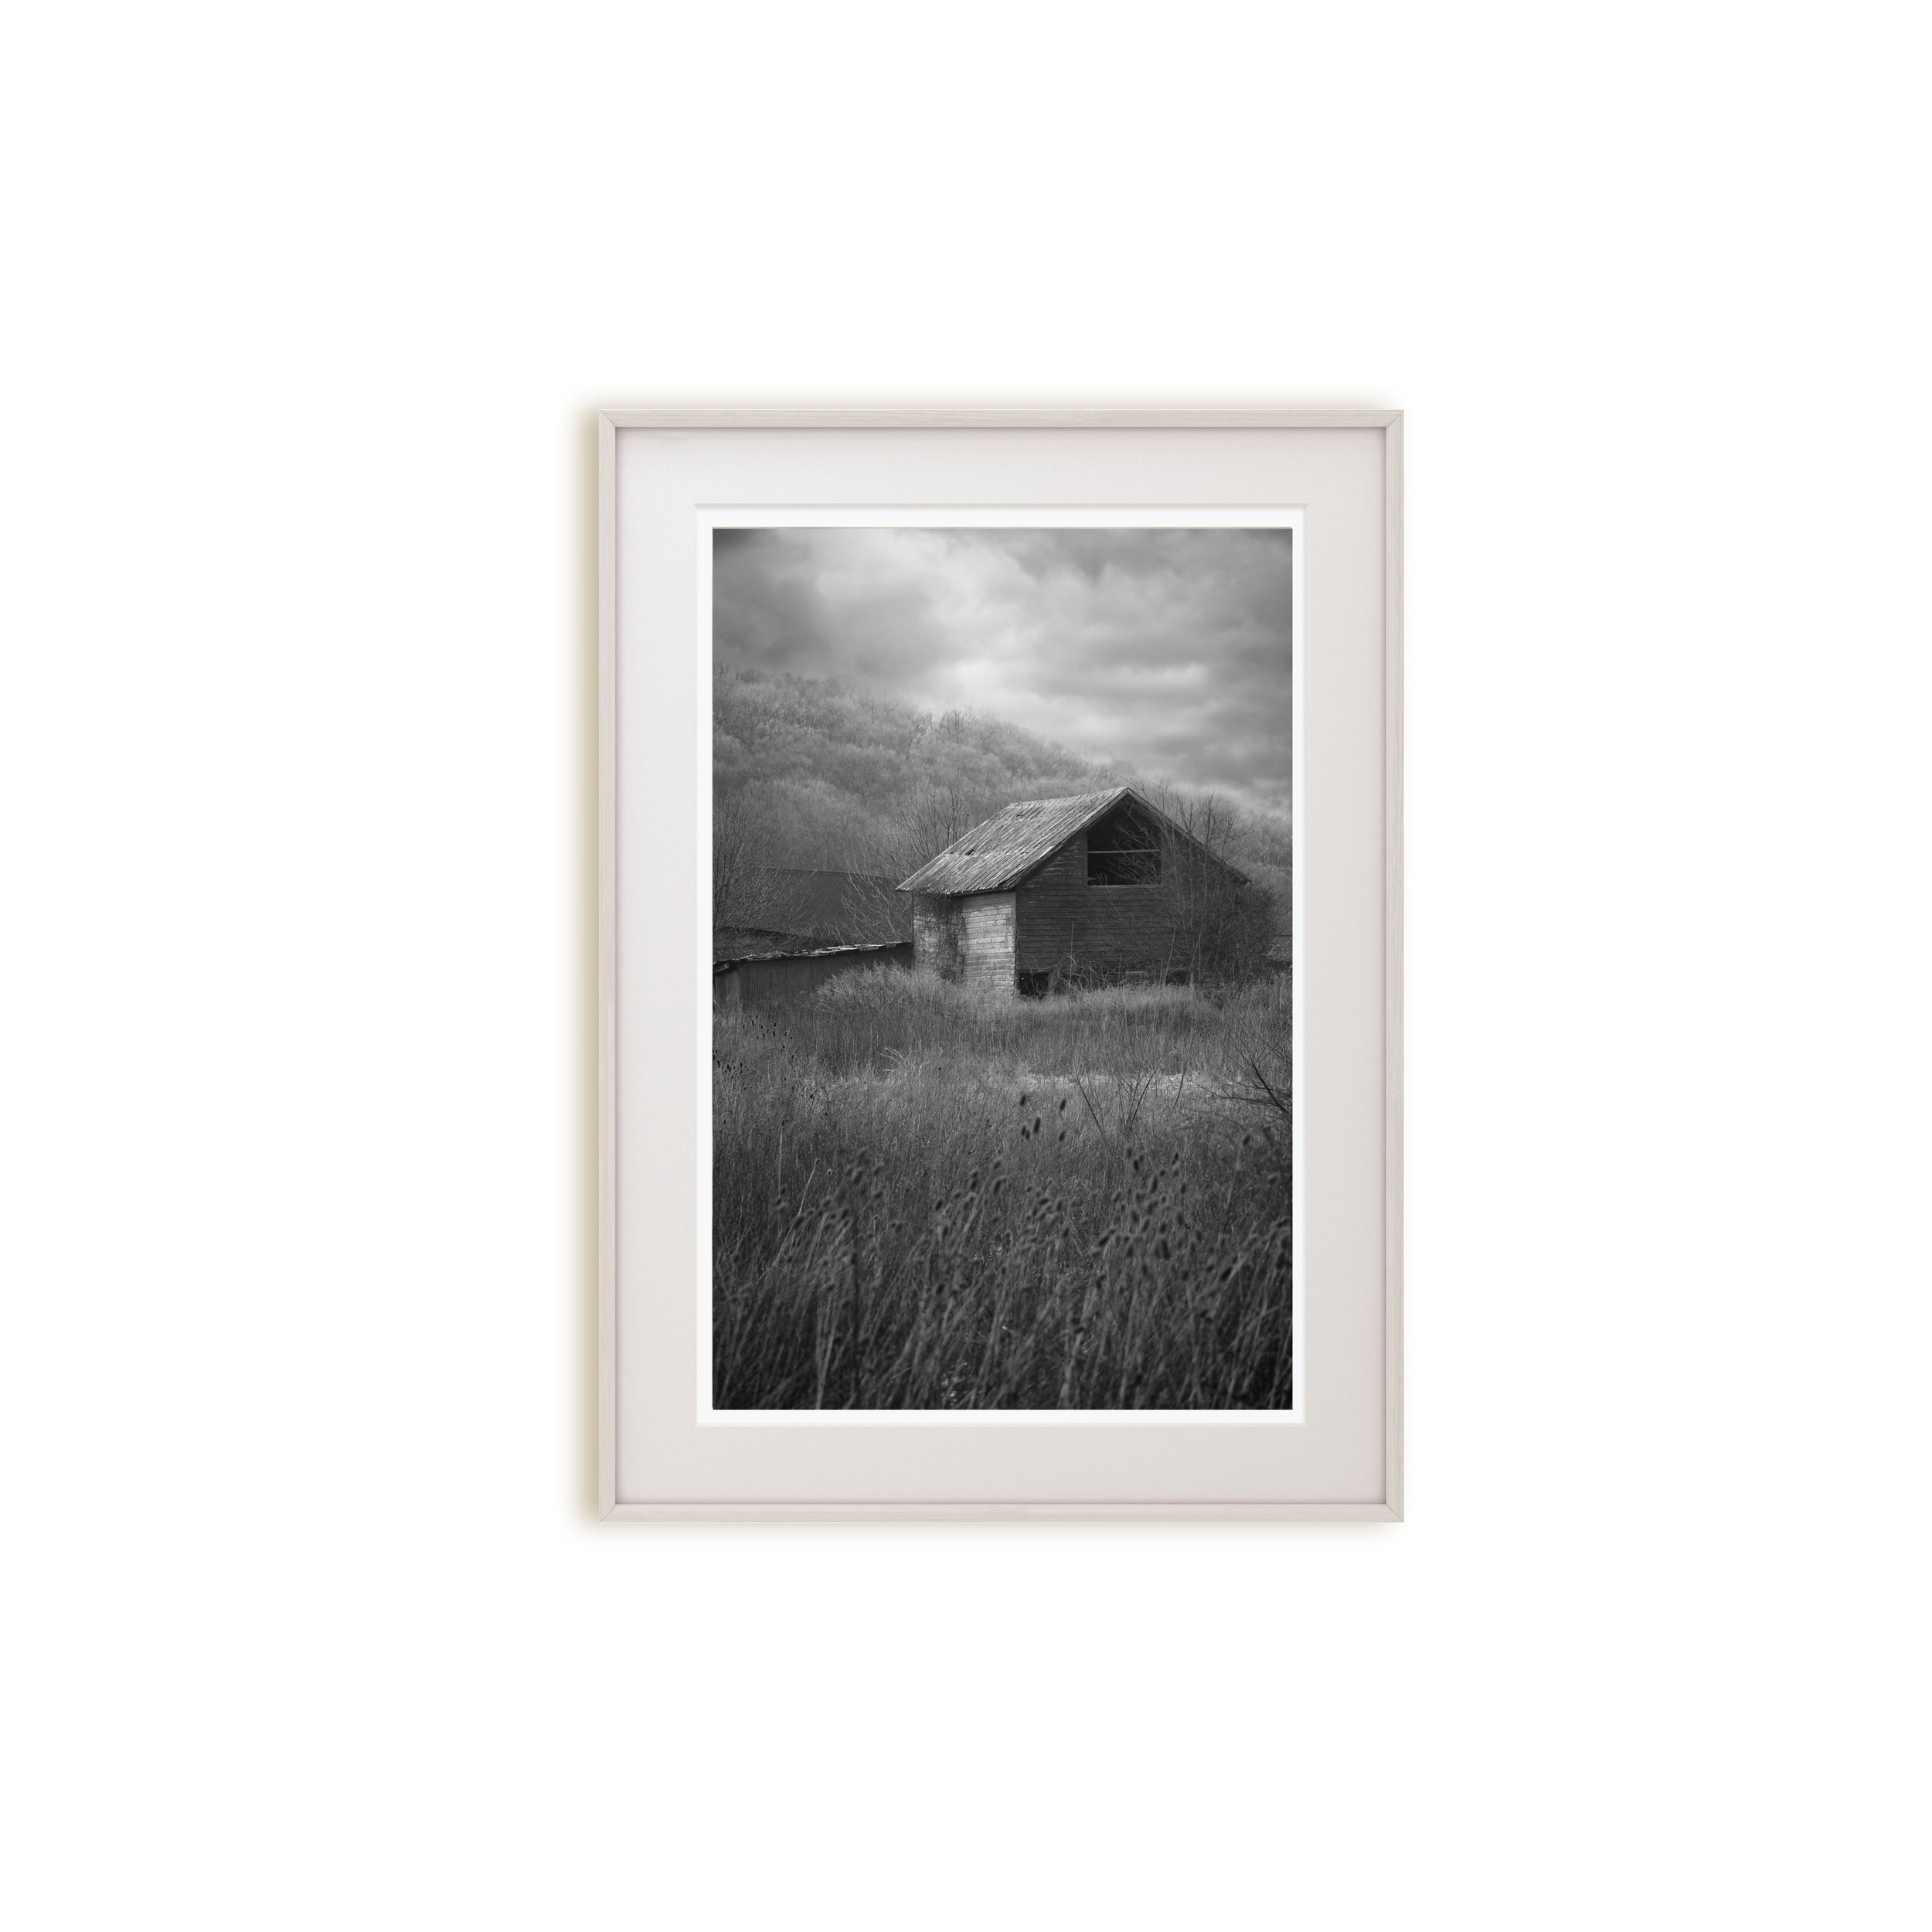 A moody black and white print of an abandoned building